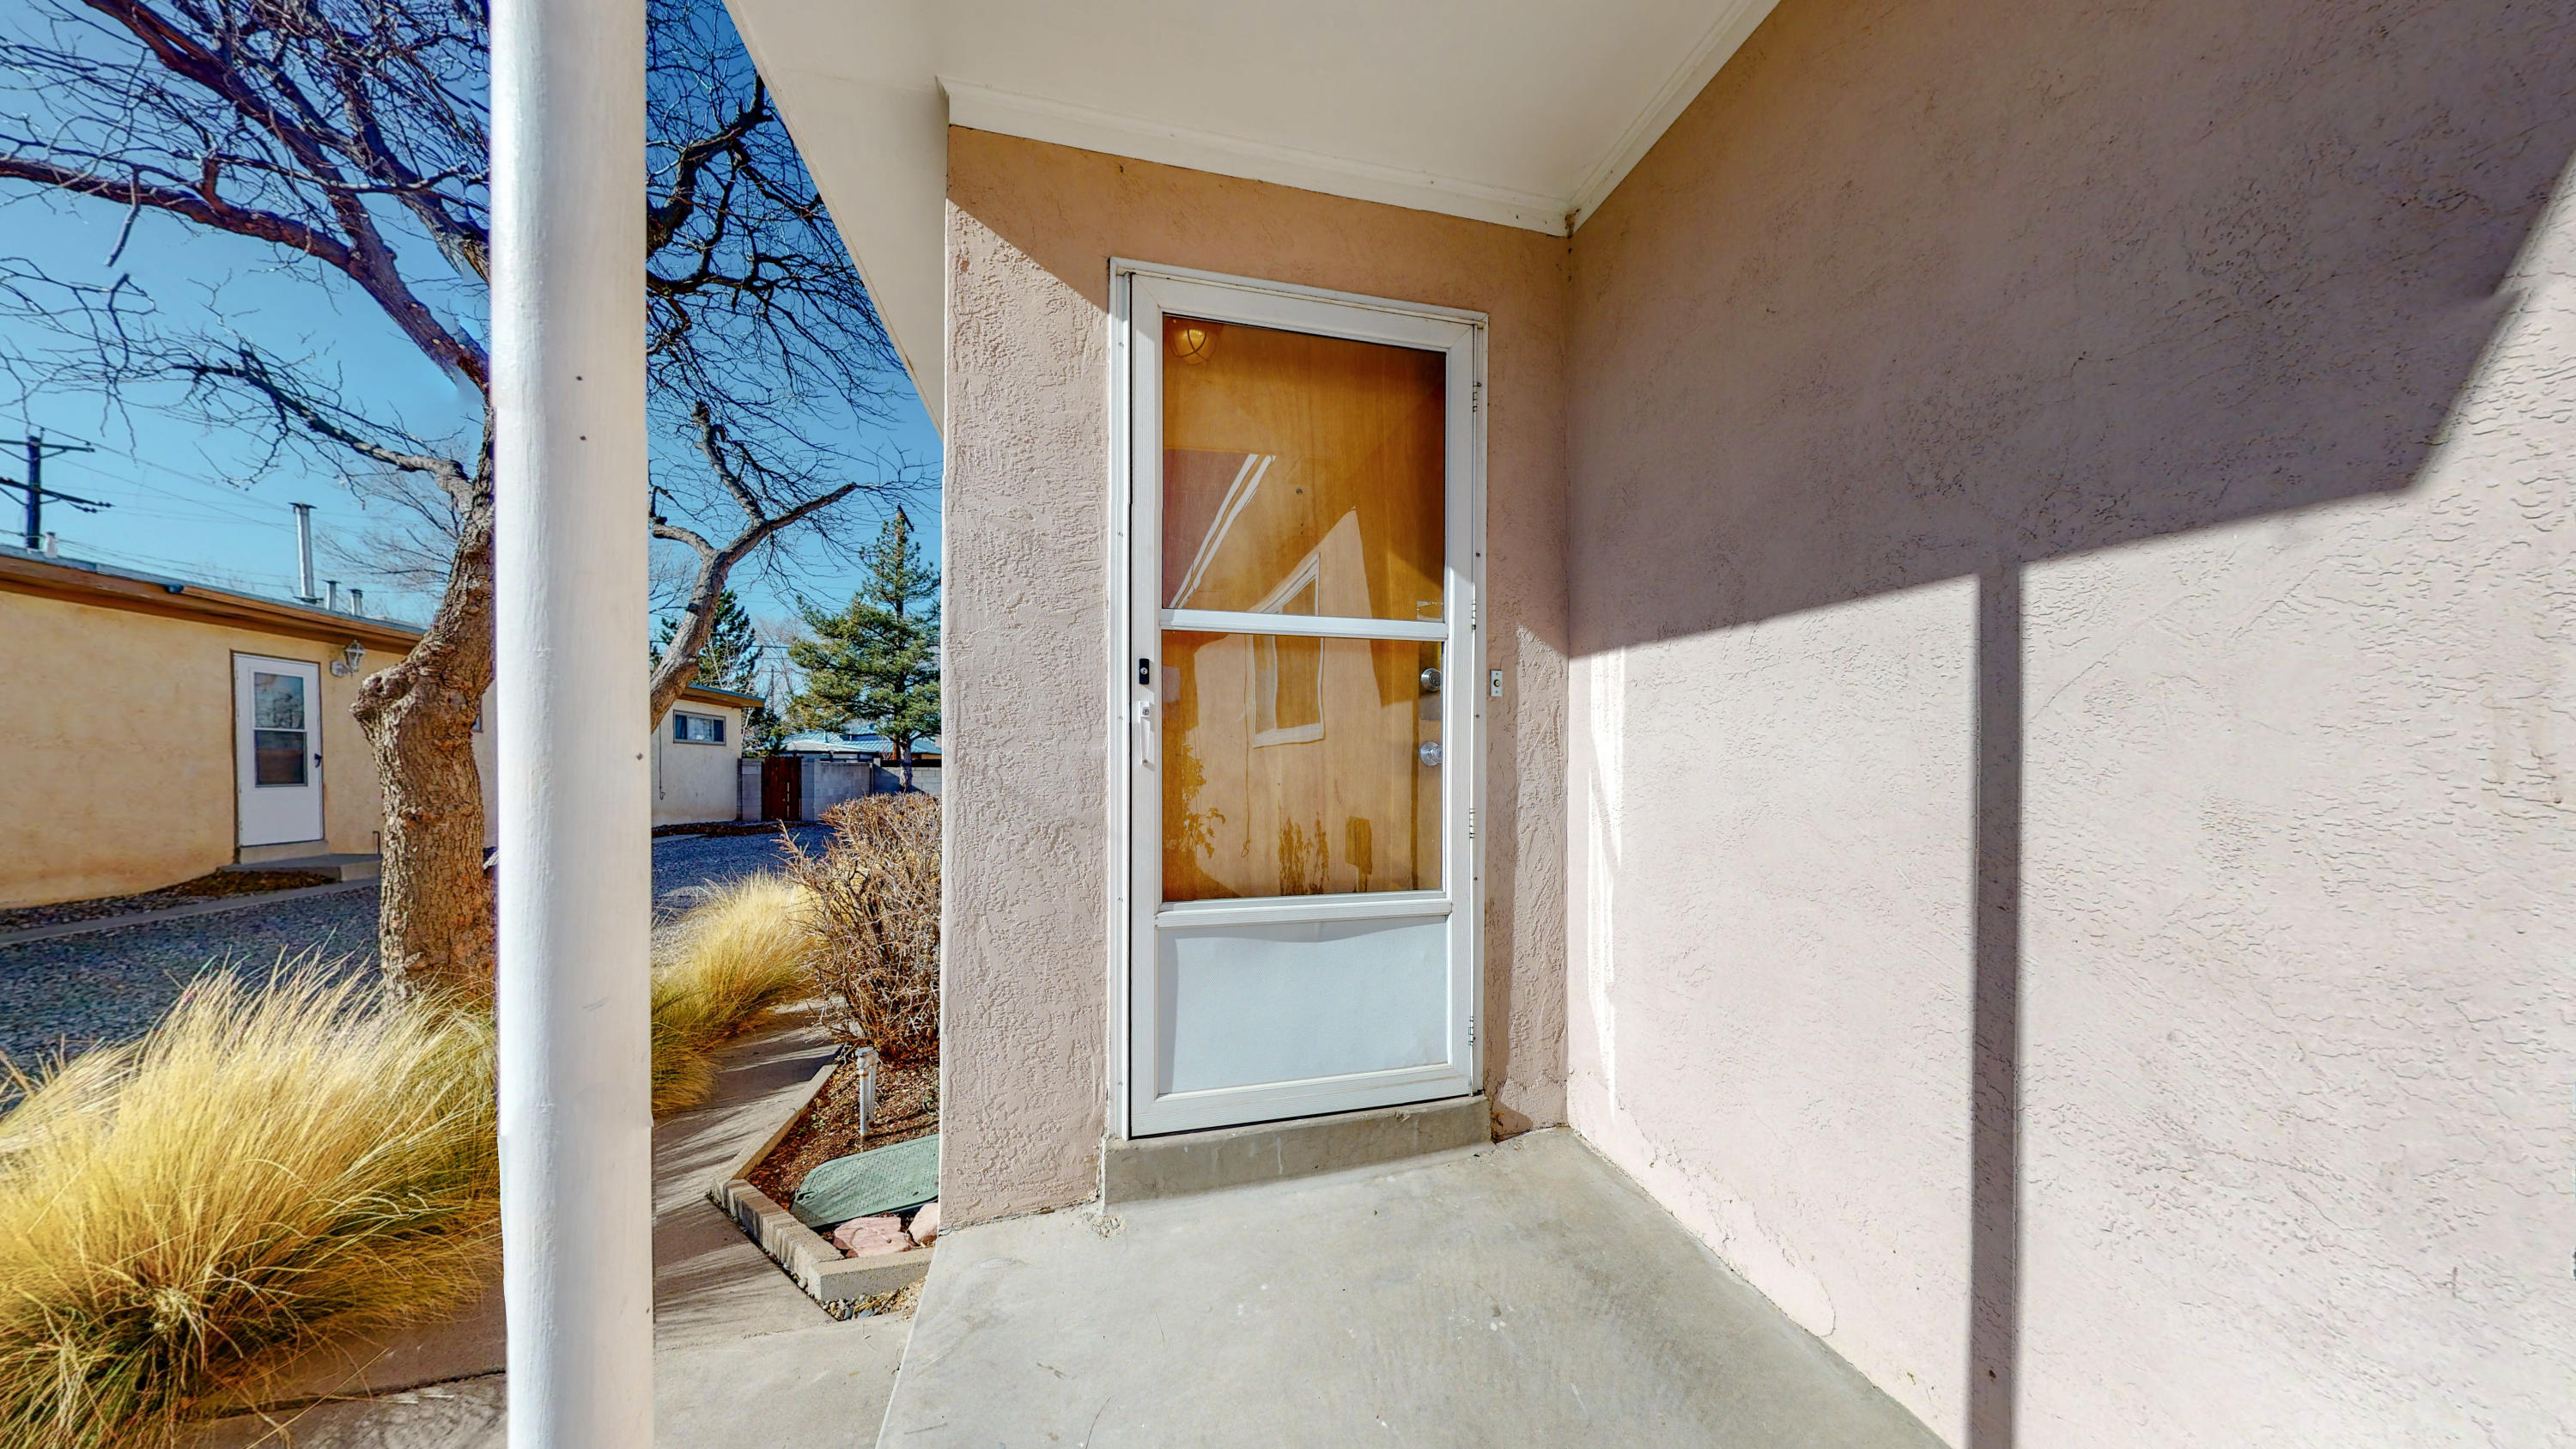 1805 & 1807 Alvarado. Great opportunity to live in one and rent the other, or rent them both for approx $1,950! Owner's unit is remodeled 3br/2ba and additional unit is remodeled 2br/1ba. New marble counters and wall heaters in Owner's unit. Newer roof. Refinished wood floors and new water heaters in both units. BOTH UNITS IN EXCELLENT CONDITION. Large storage shed and double carport attached. Well kept grounds and the entire neighborhood shows pride of ownership. One block from beautiful Alvarado Park, easy walking distance to Starbucks coffee, close to freeway access, and close to shopping and dining in all directions.